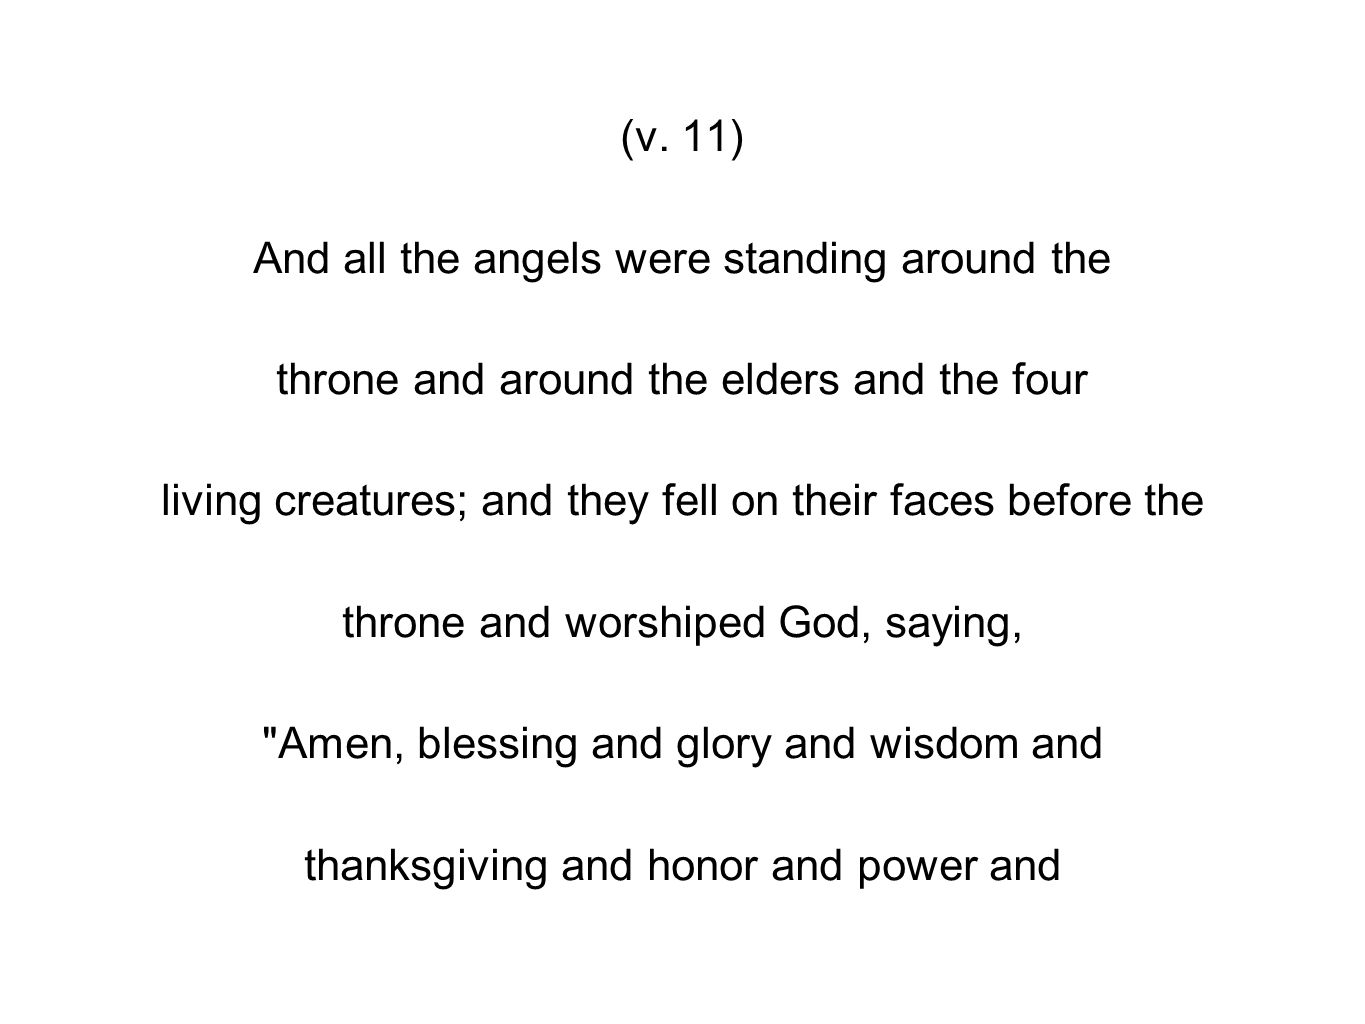 (v. 11) And all the angels were standing around the throne and around the elders and the four living creatures; and they fell on their faces before th